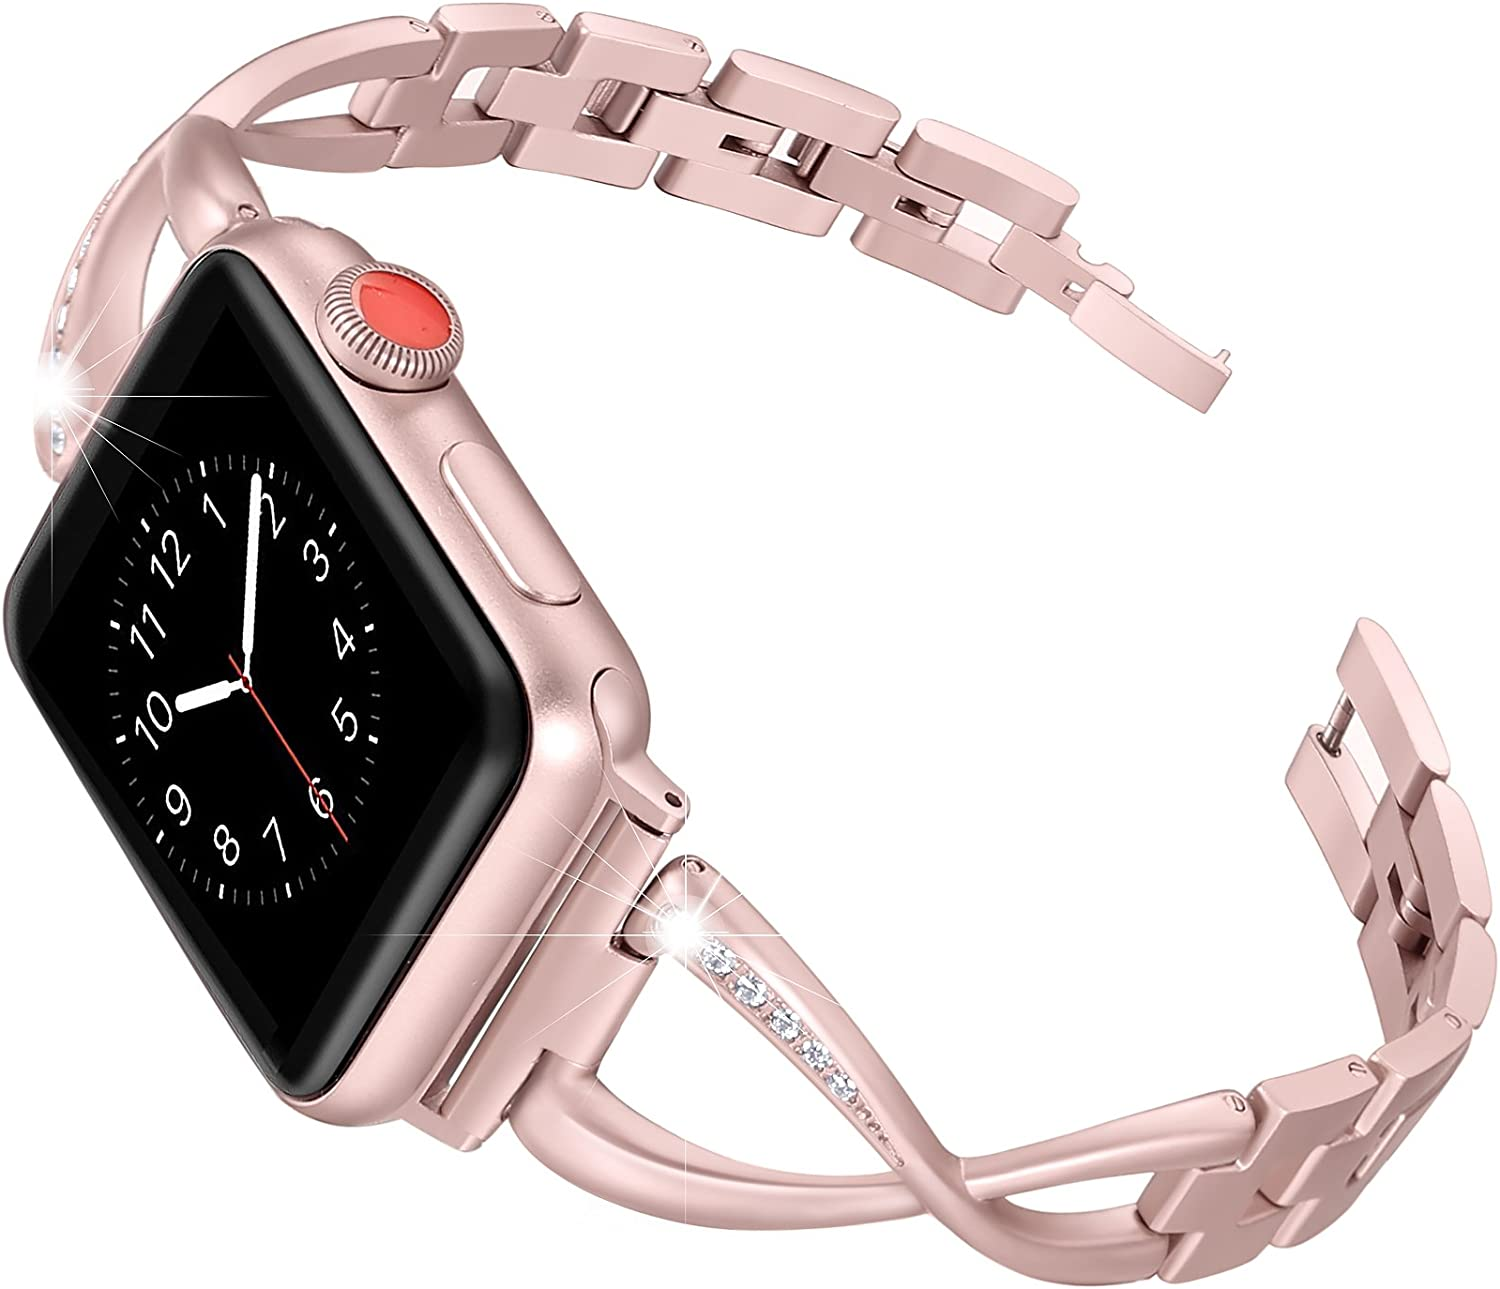 Secbolt Bands Compatible Apple Watch Band 38mm 40mm Iwatch Series 6/5/4/3/2/1 SE Women Dressy Jewelry Stainless Steel Accessories Wristband Strap, Rose Gold